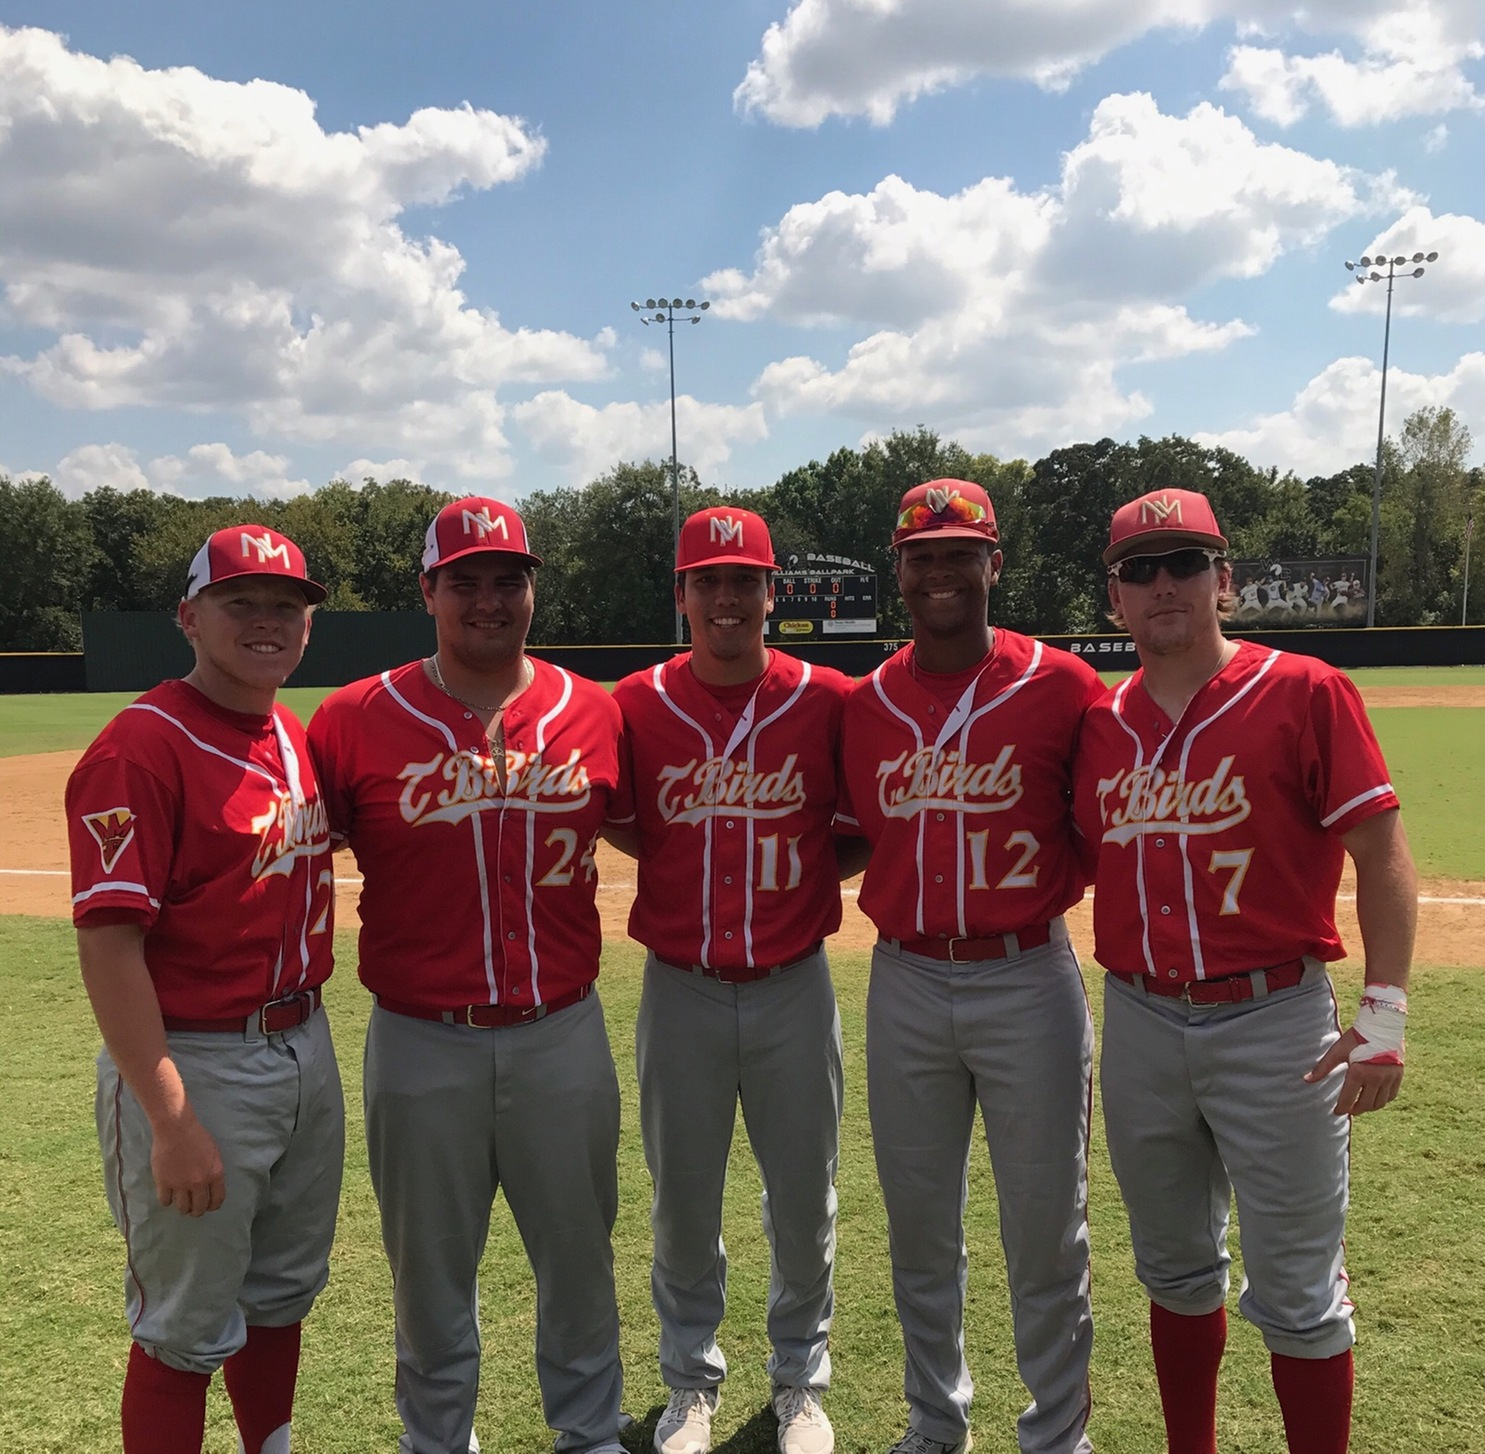 Five Represent NMJC at the All Star Baseball Game